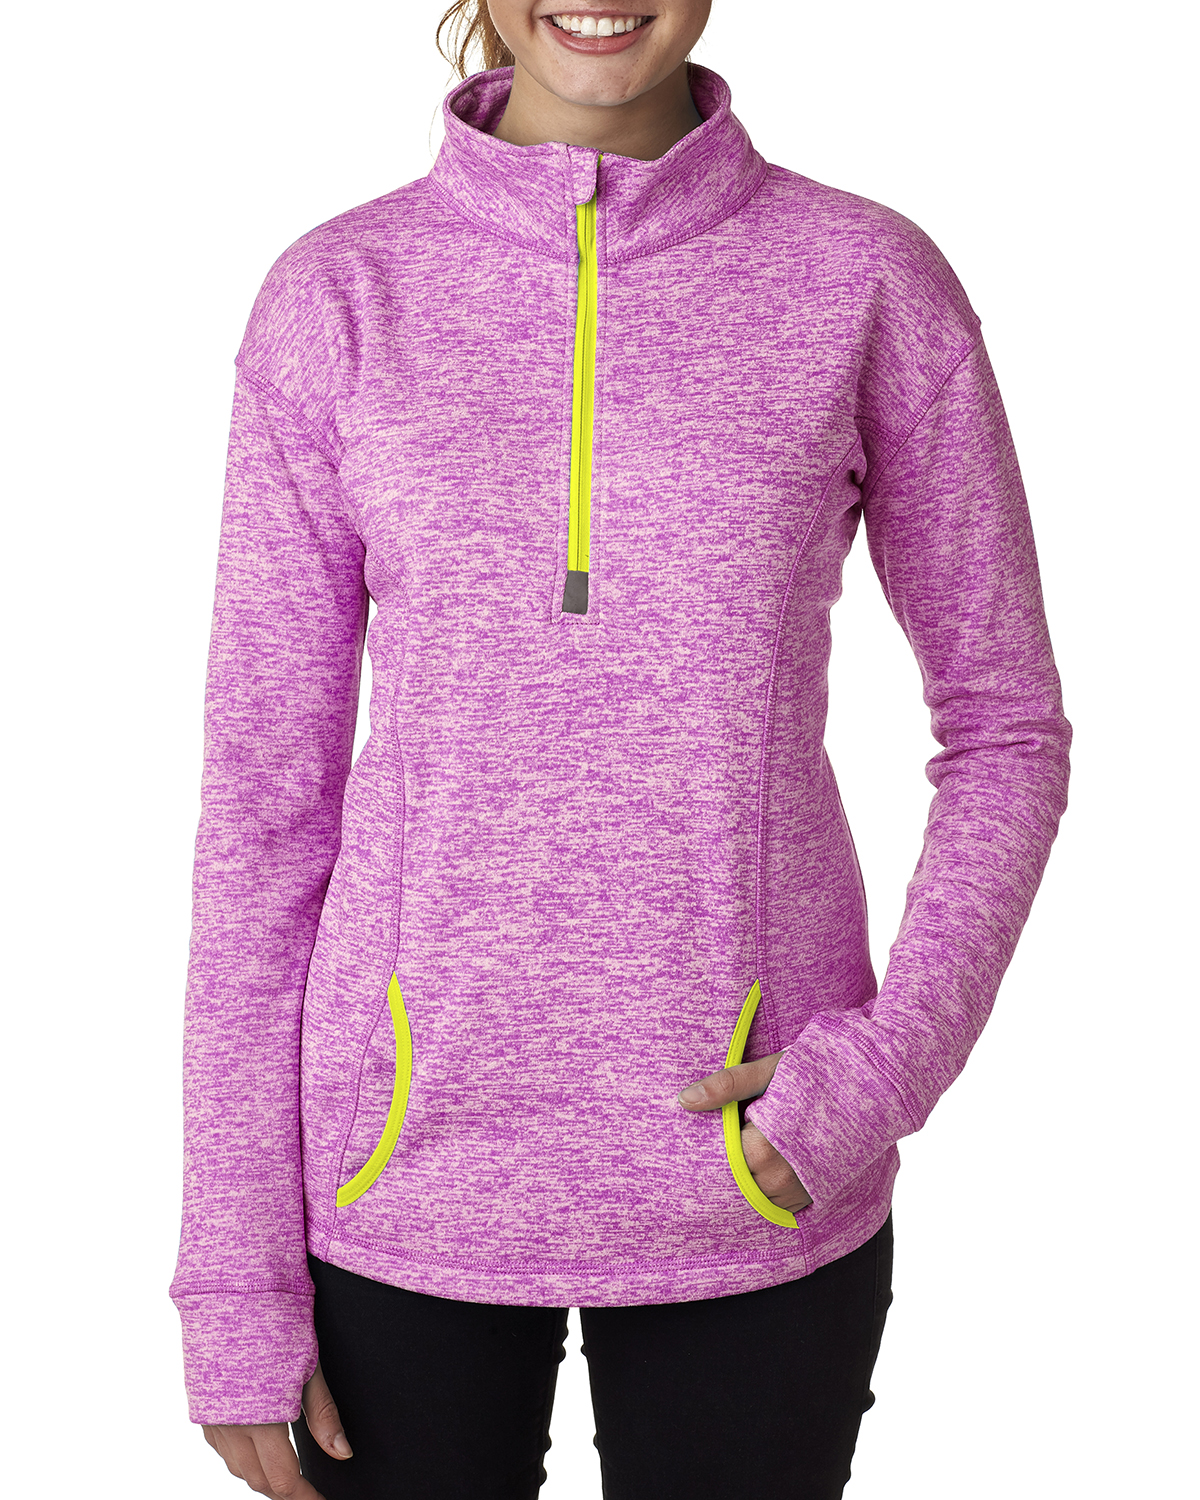 J.America JA8617 - Ladies' Cosmic Quarter Zip Fleece